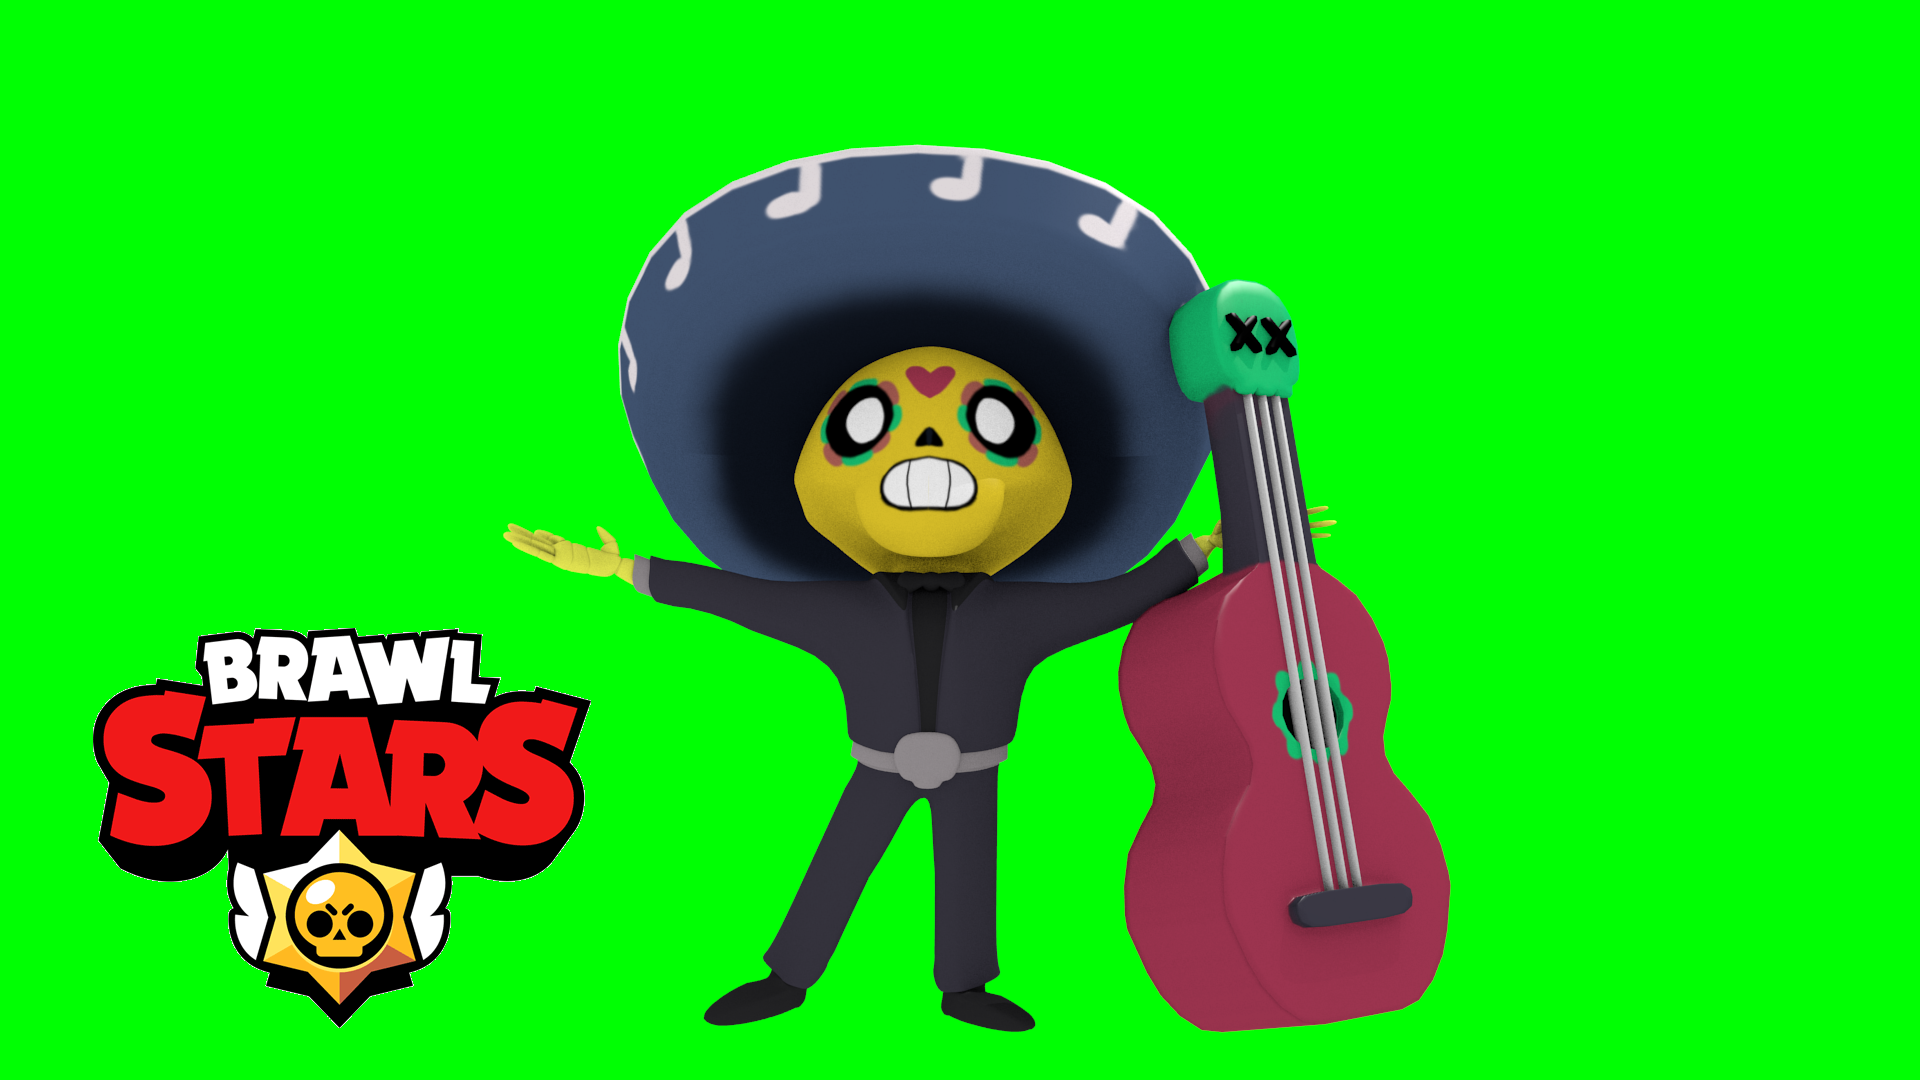 Poco - Brawl Stars by OptimusDWB - Thingiverse